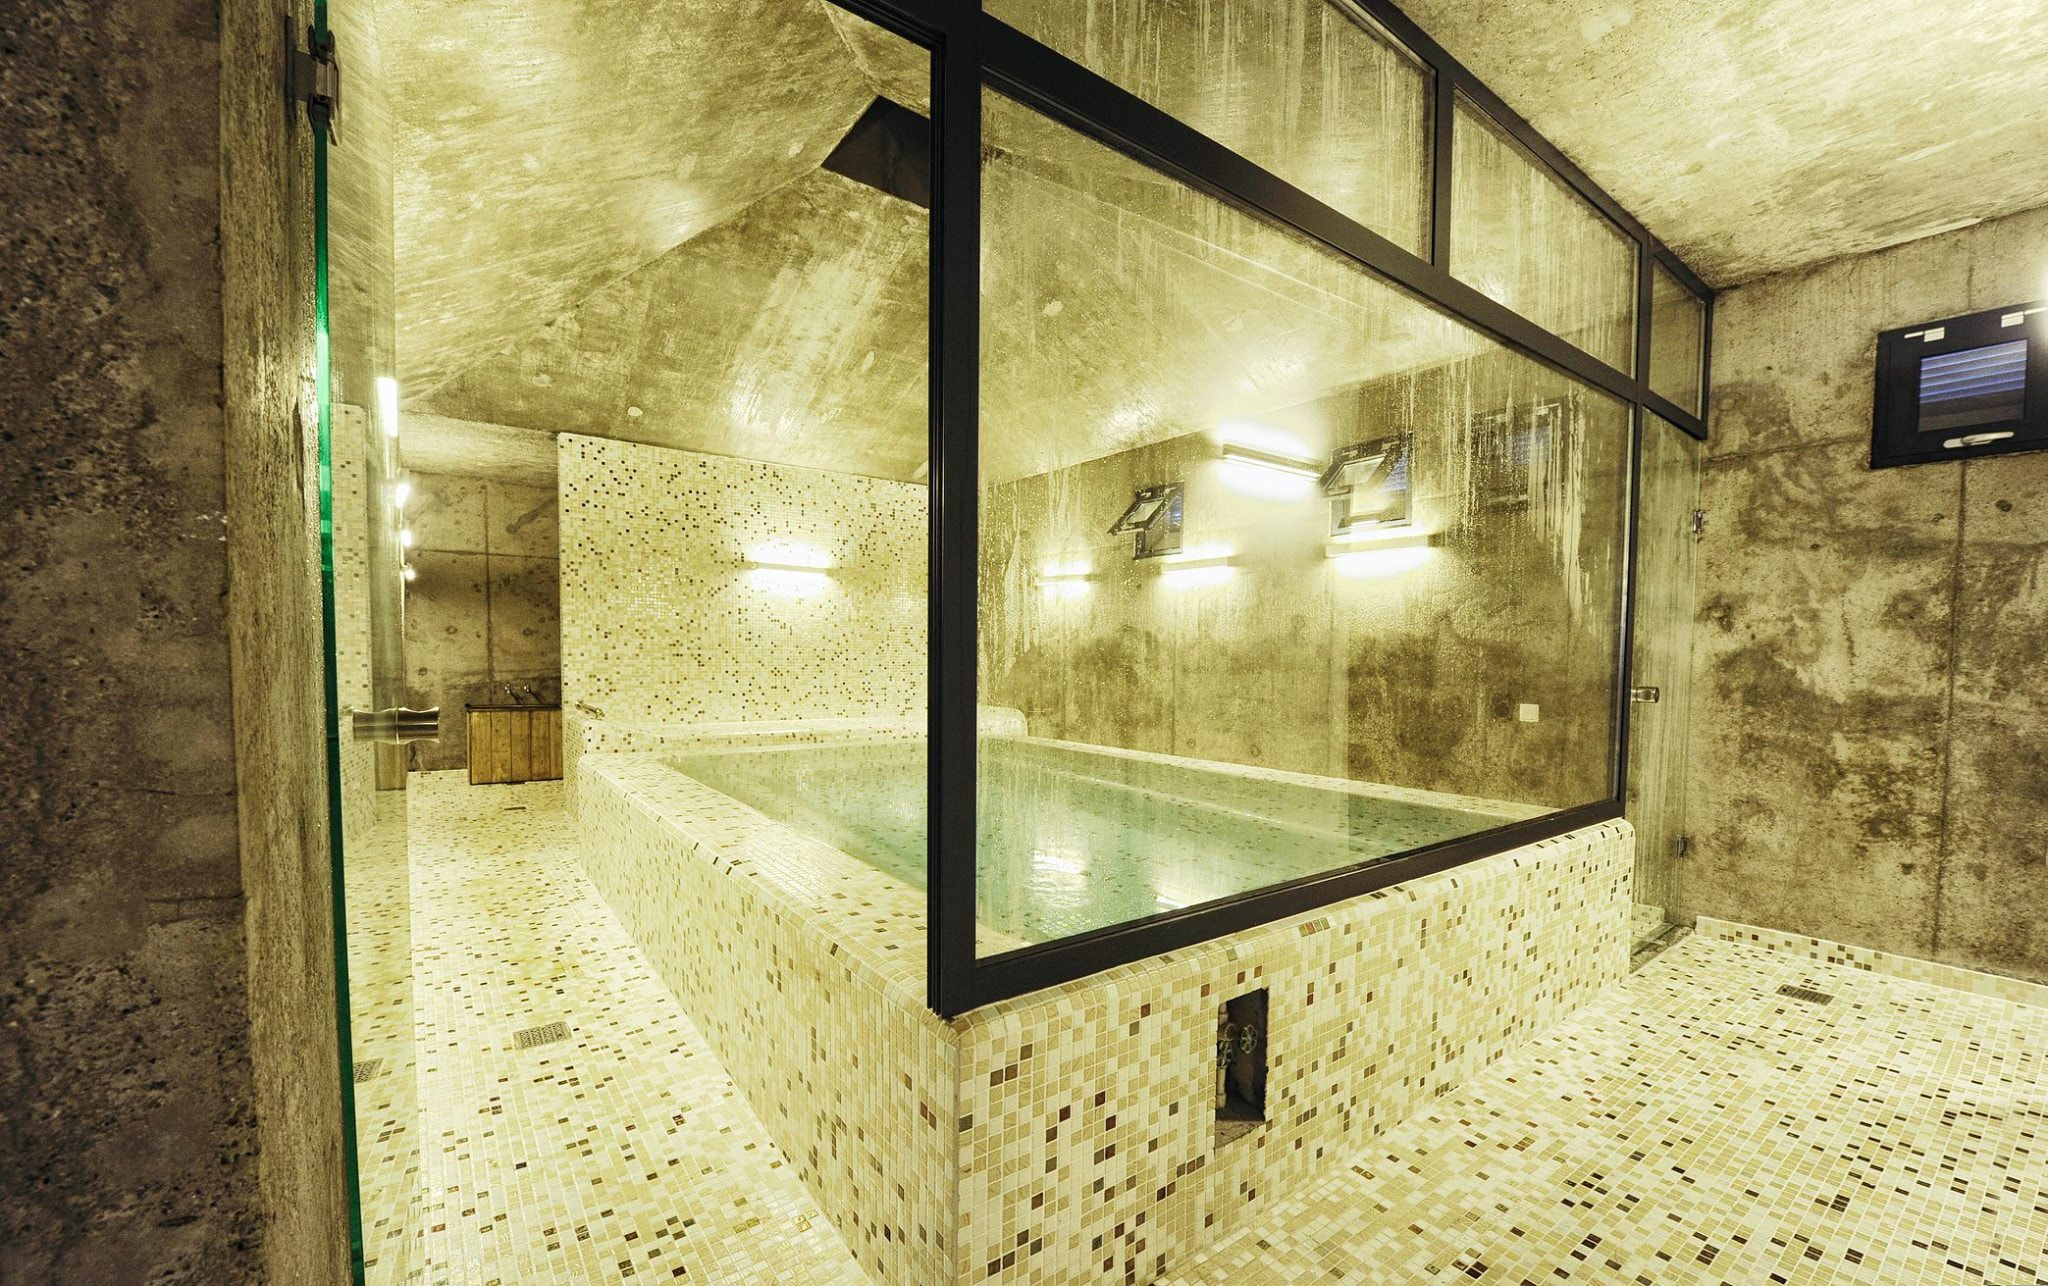 Lisi_Lake_Sulfur_Baths_Wellness_Ezarri